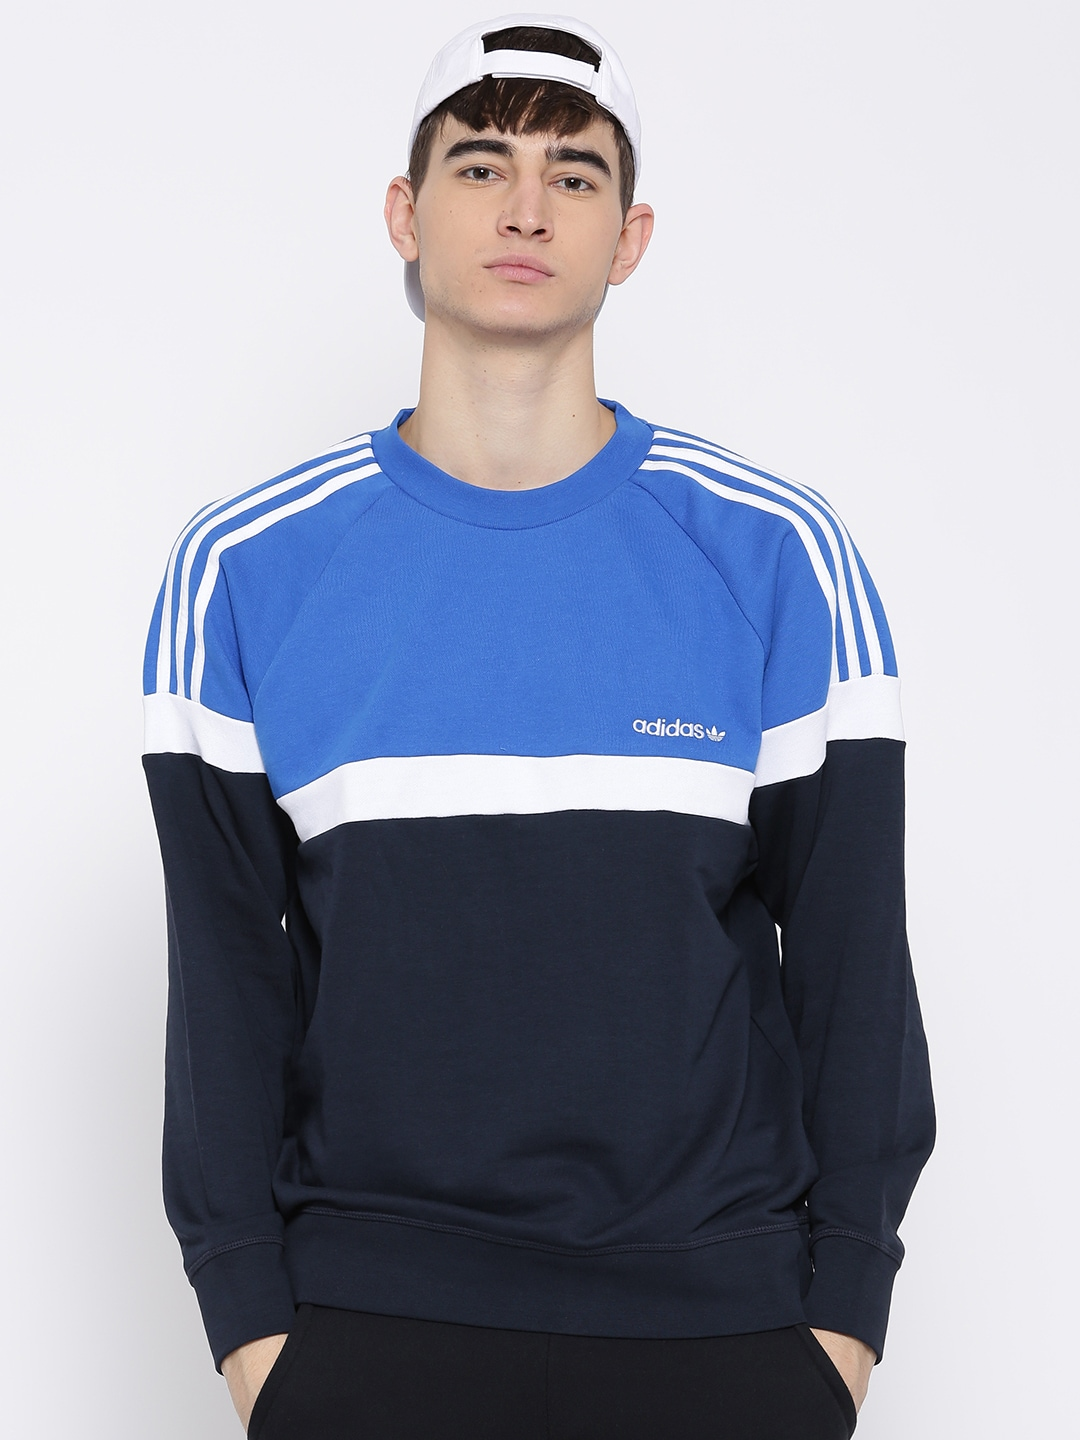 706ed6cea3c6 Adidas originals ay7714 Blue Itasca Crew Colourblocked Sweatshirt- Price in  India